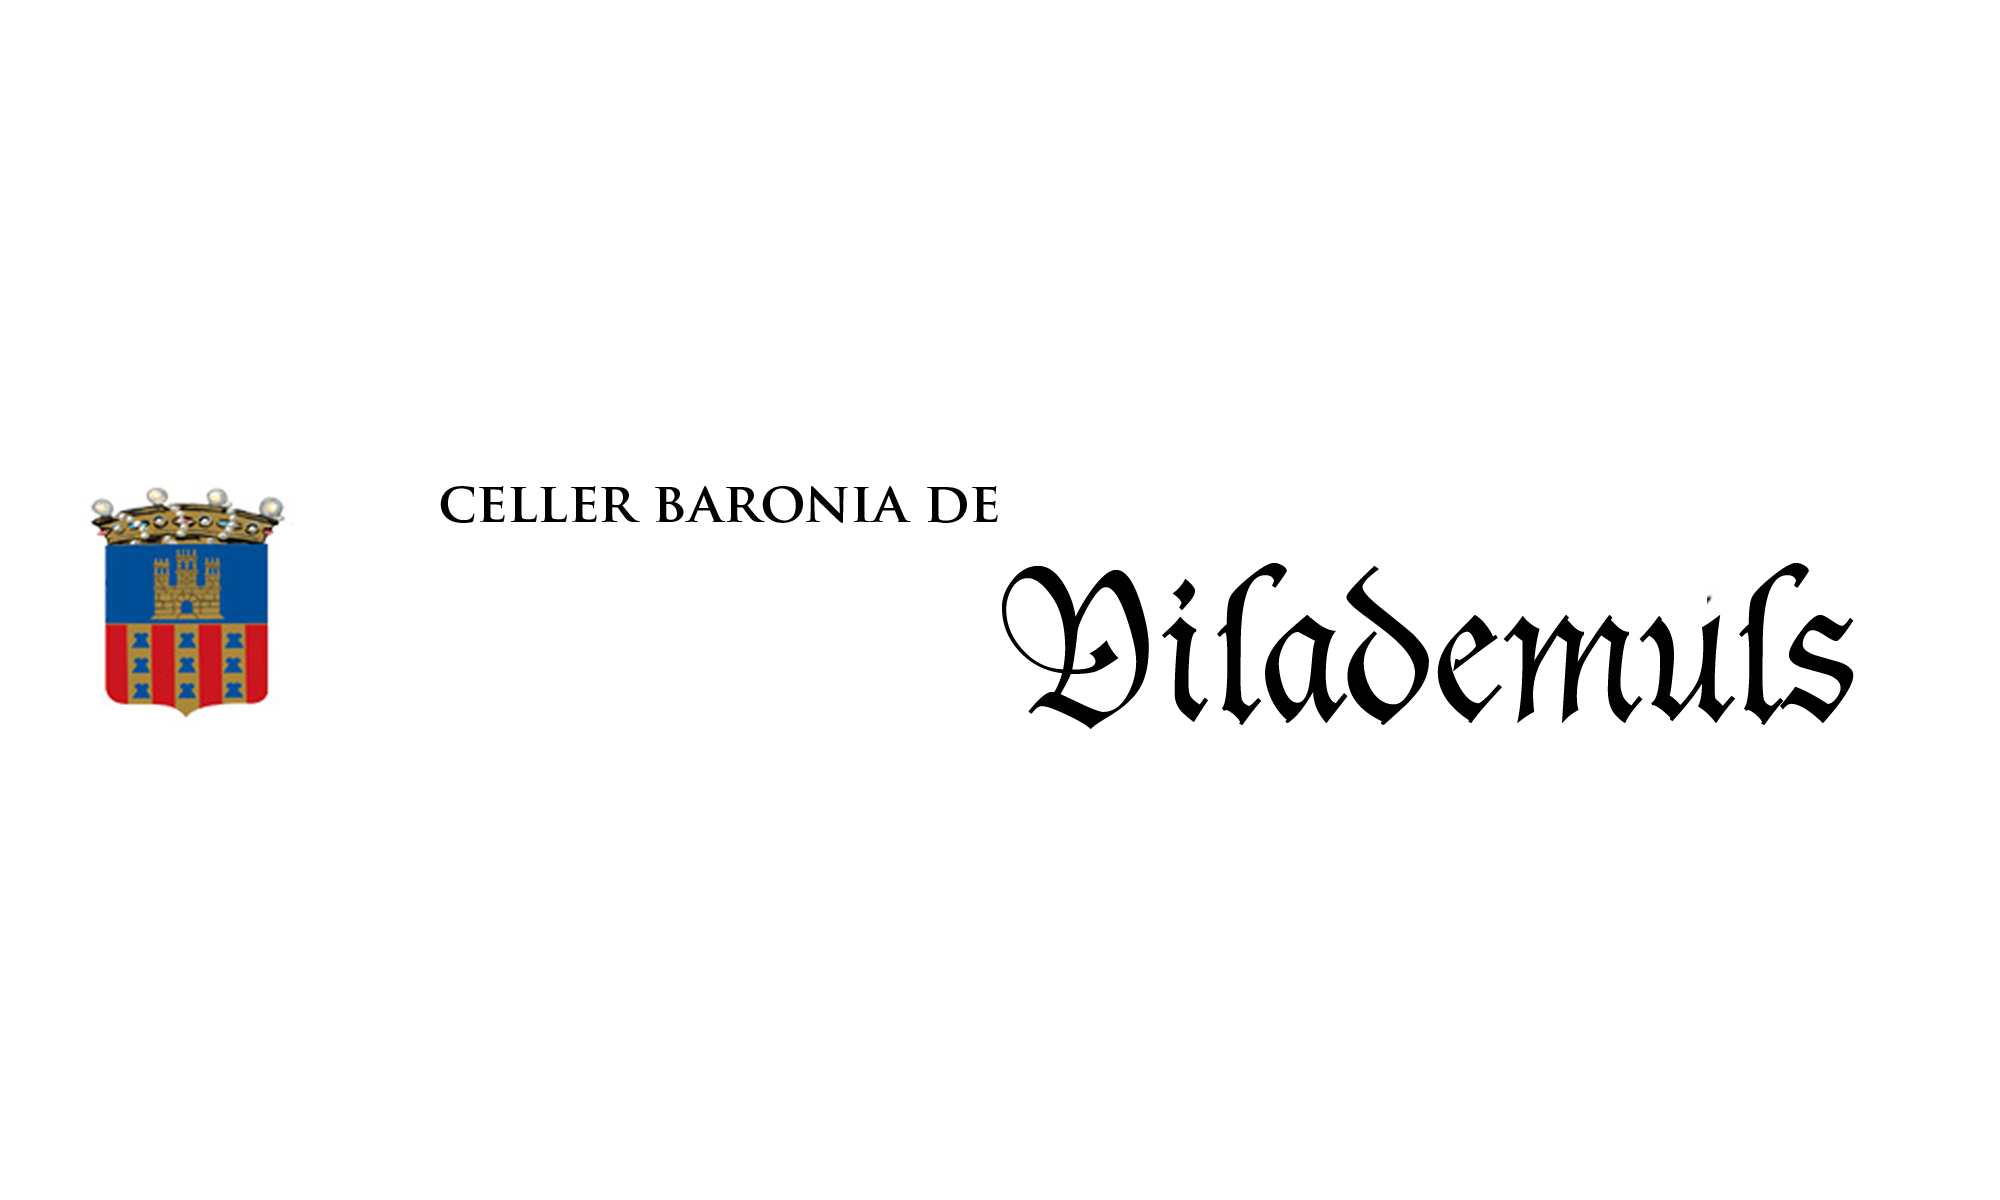 CELLER BARONIA DE VILADEMULS